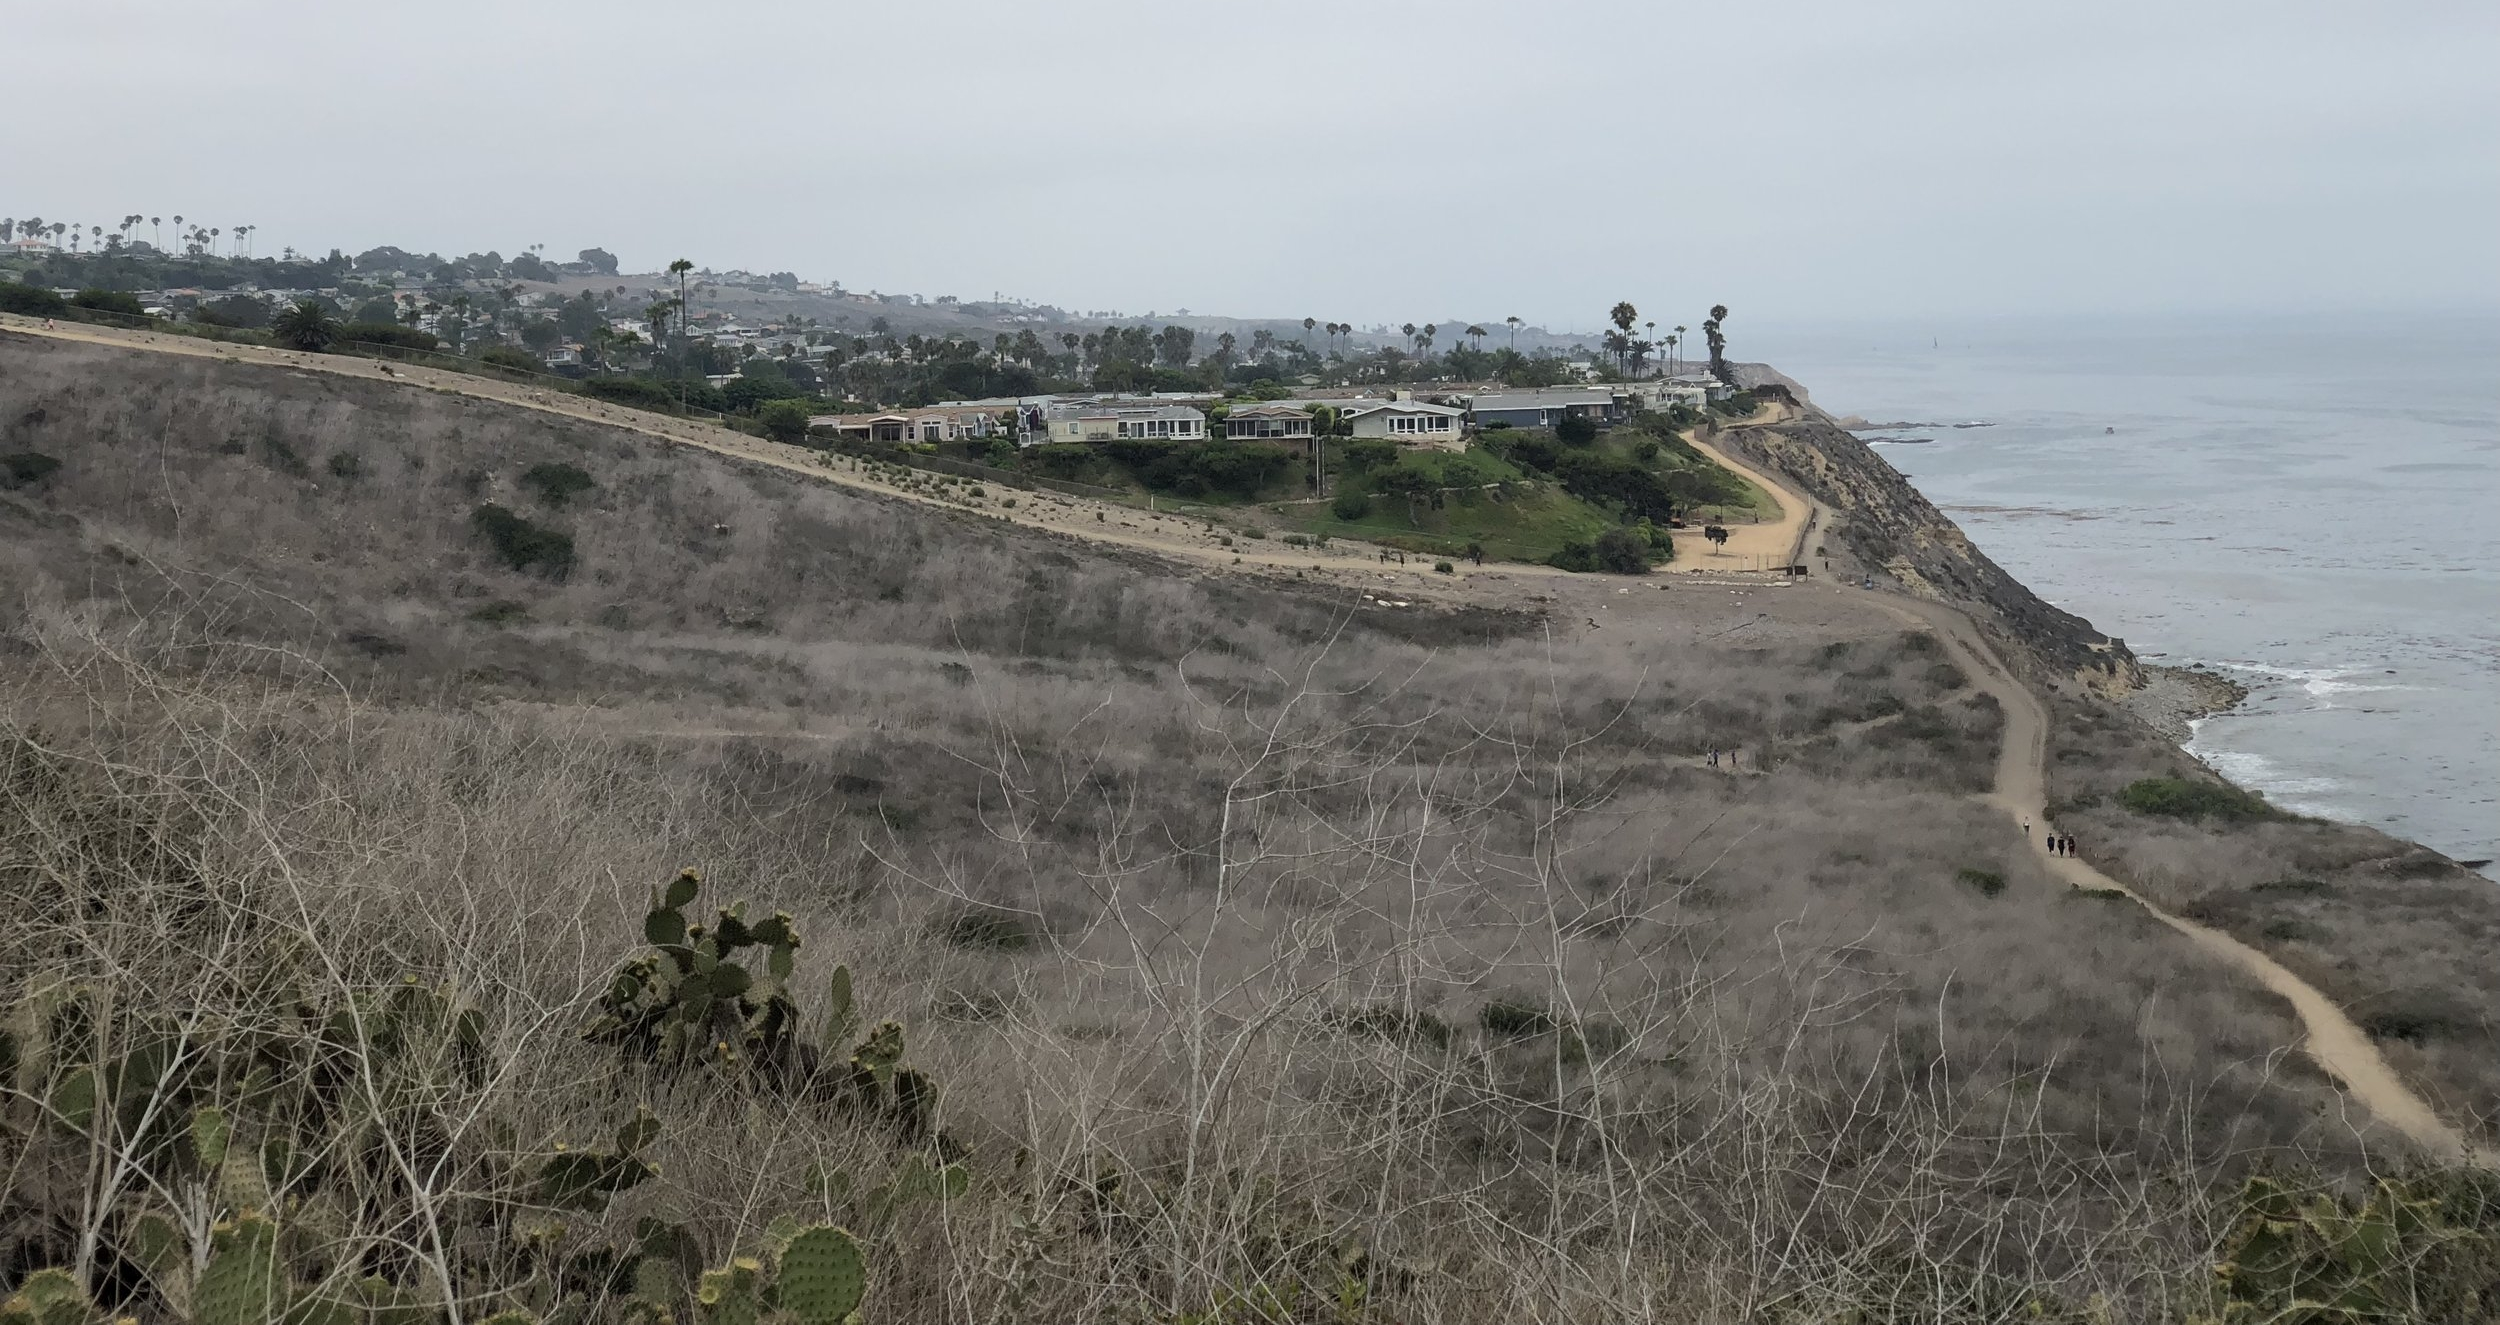 The view over Shoreline Park Trail and San Pedro and Rancho Palos Verdes, California.